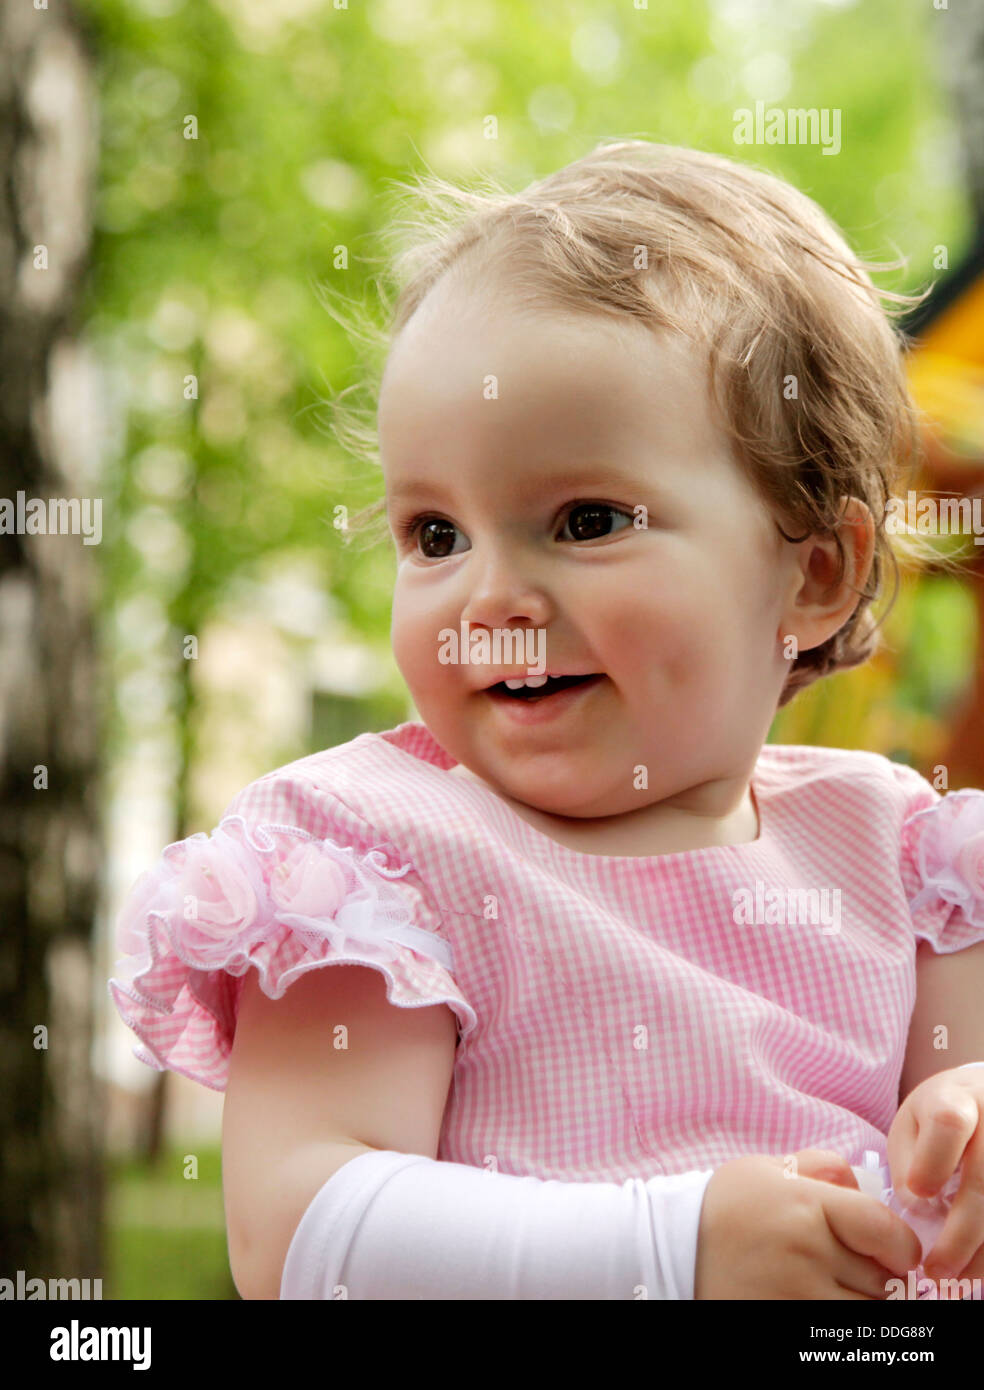 portrait of blond small girl - Stock Image